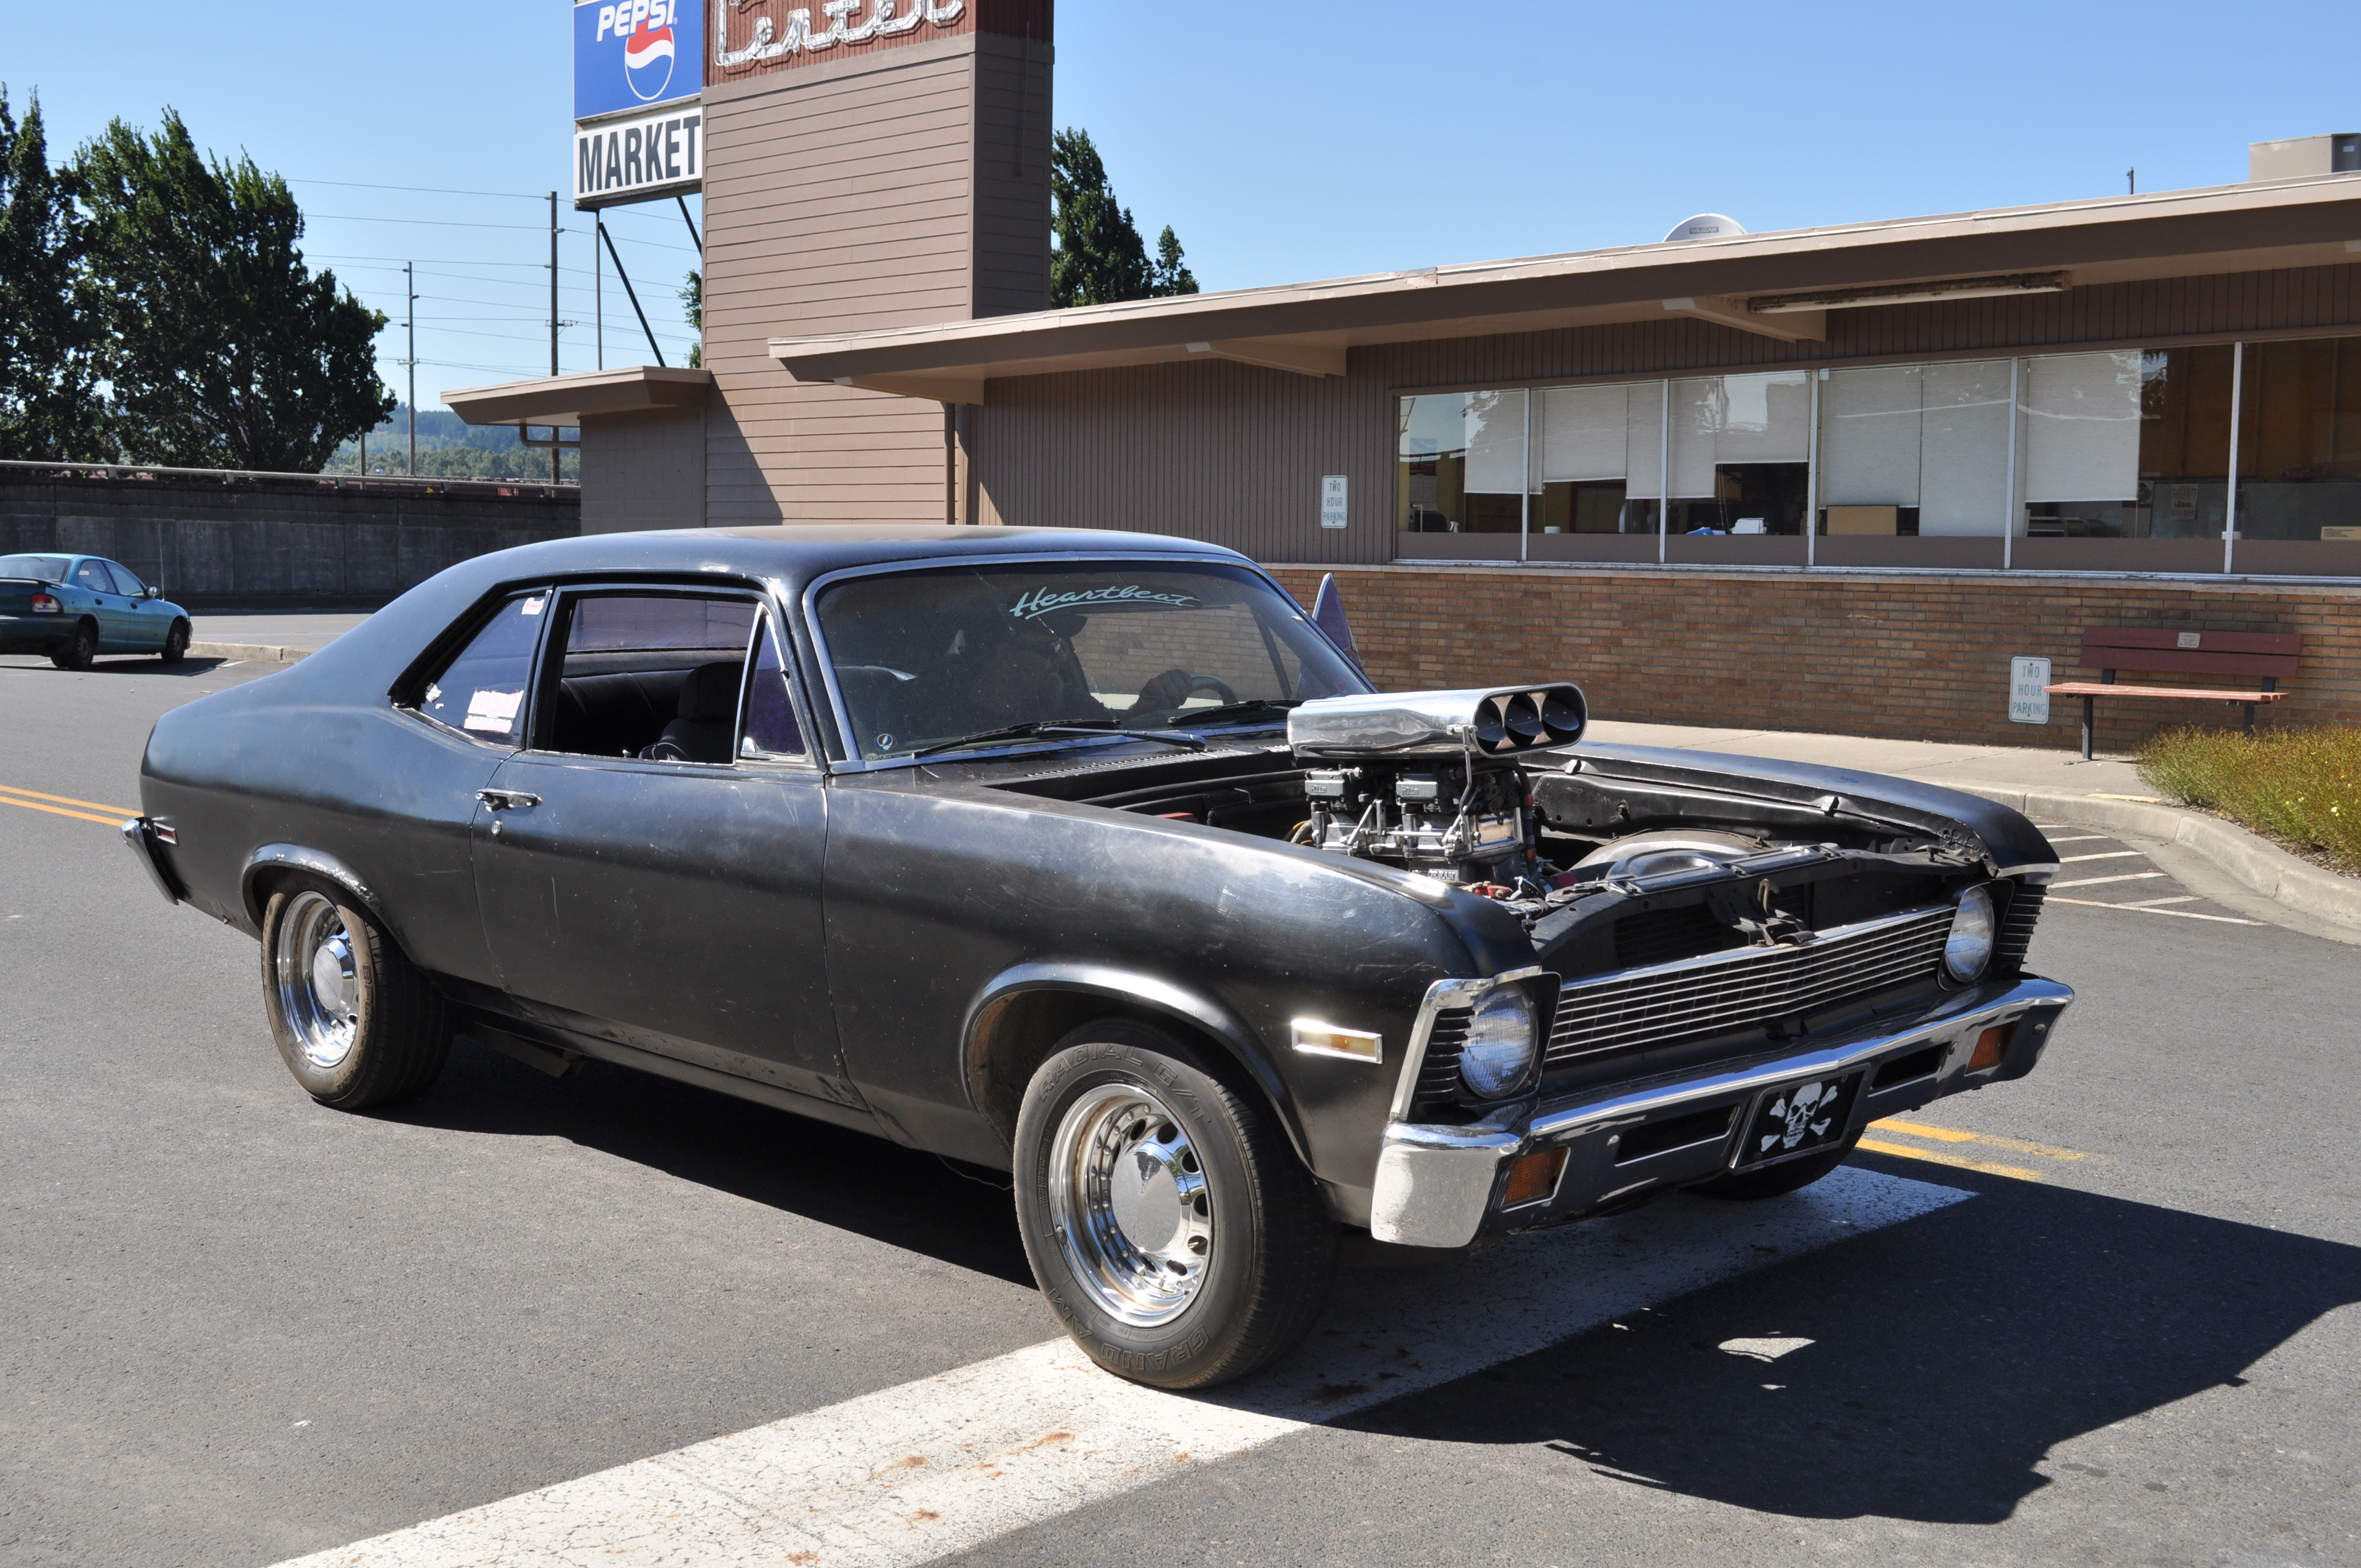 a history of the chevrolet nova and chevy ii in automotive history Chevrolet nova automotive industry  in its original form it was the top model in the compact car chevy ii range and was marketed as the chevrolet chevy ii nova .